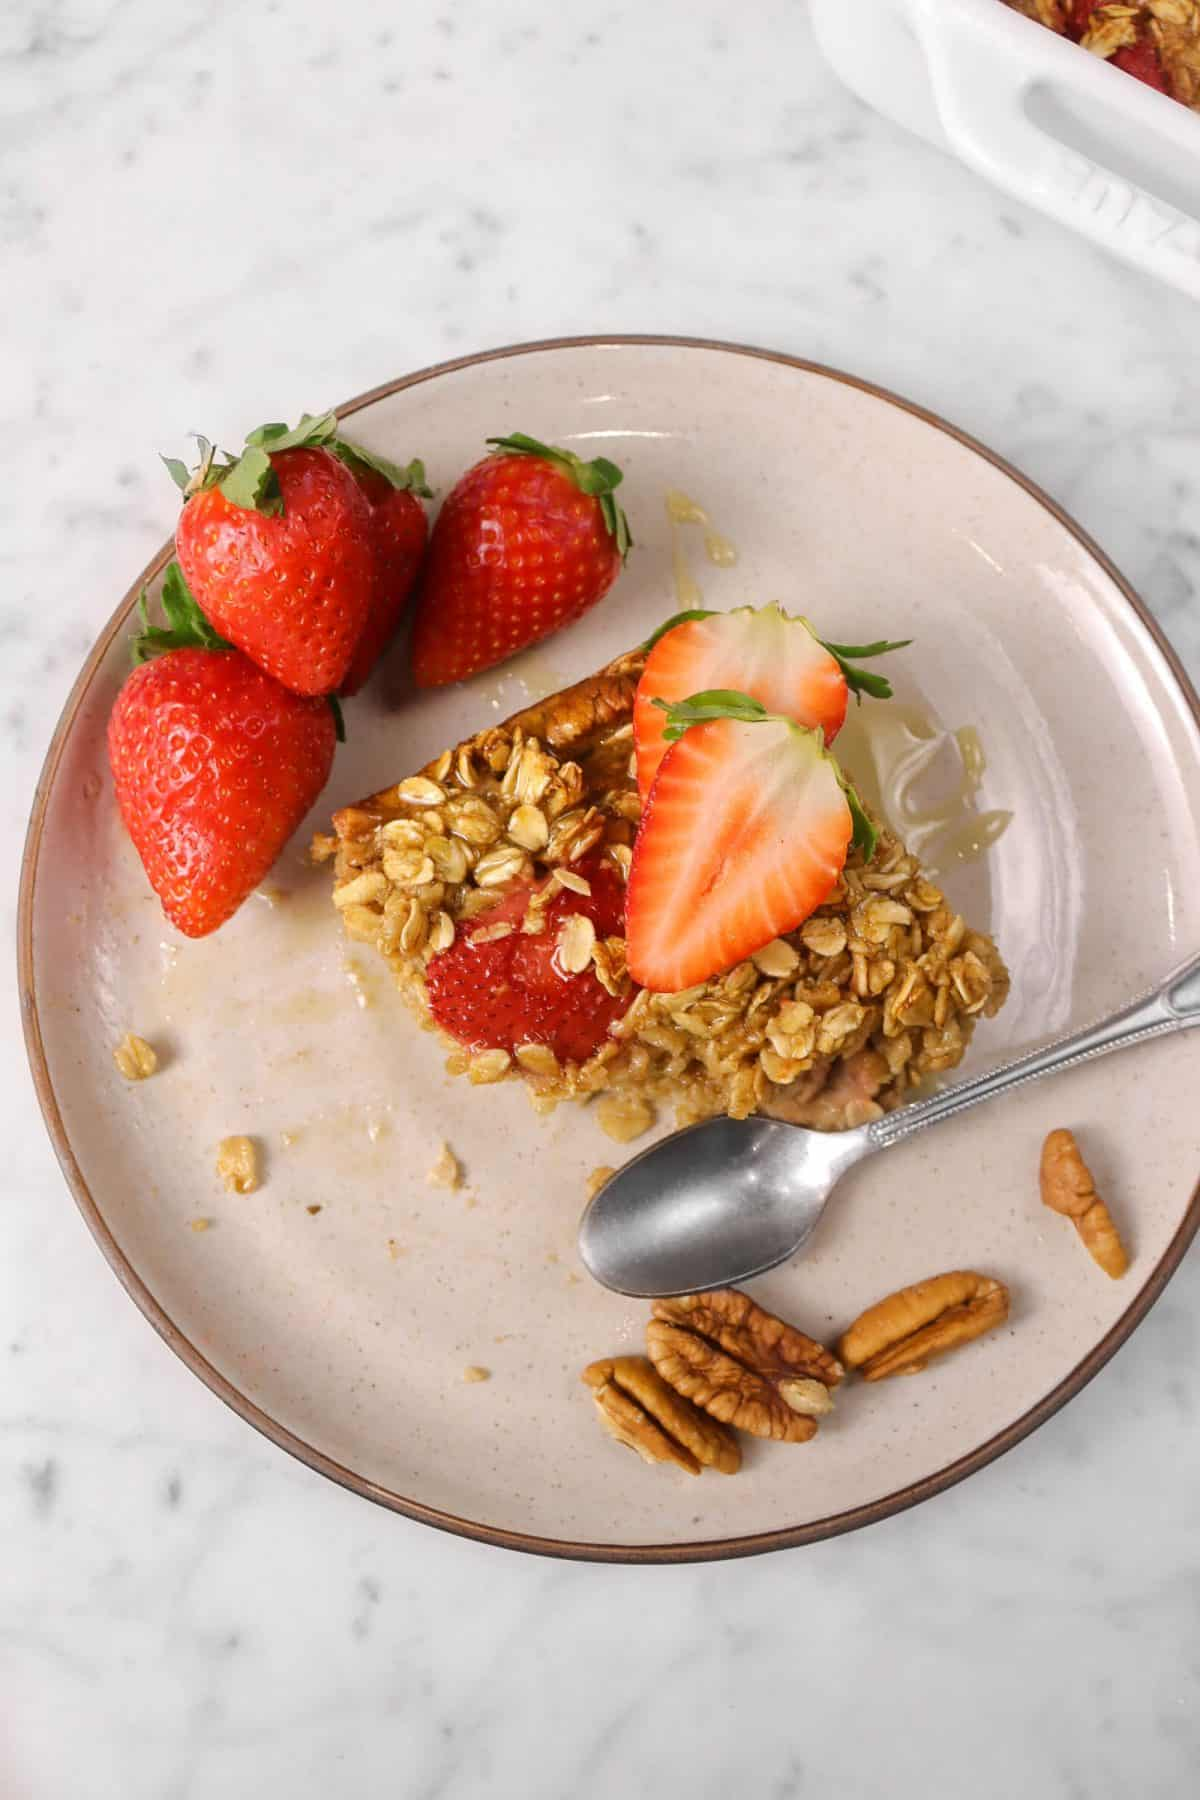 slice of oatmeal bake on a plate with strawberries and nuts